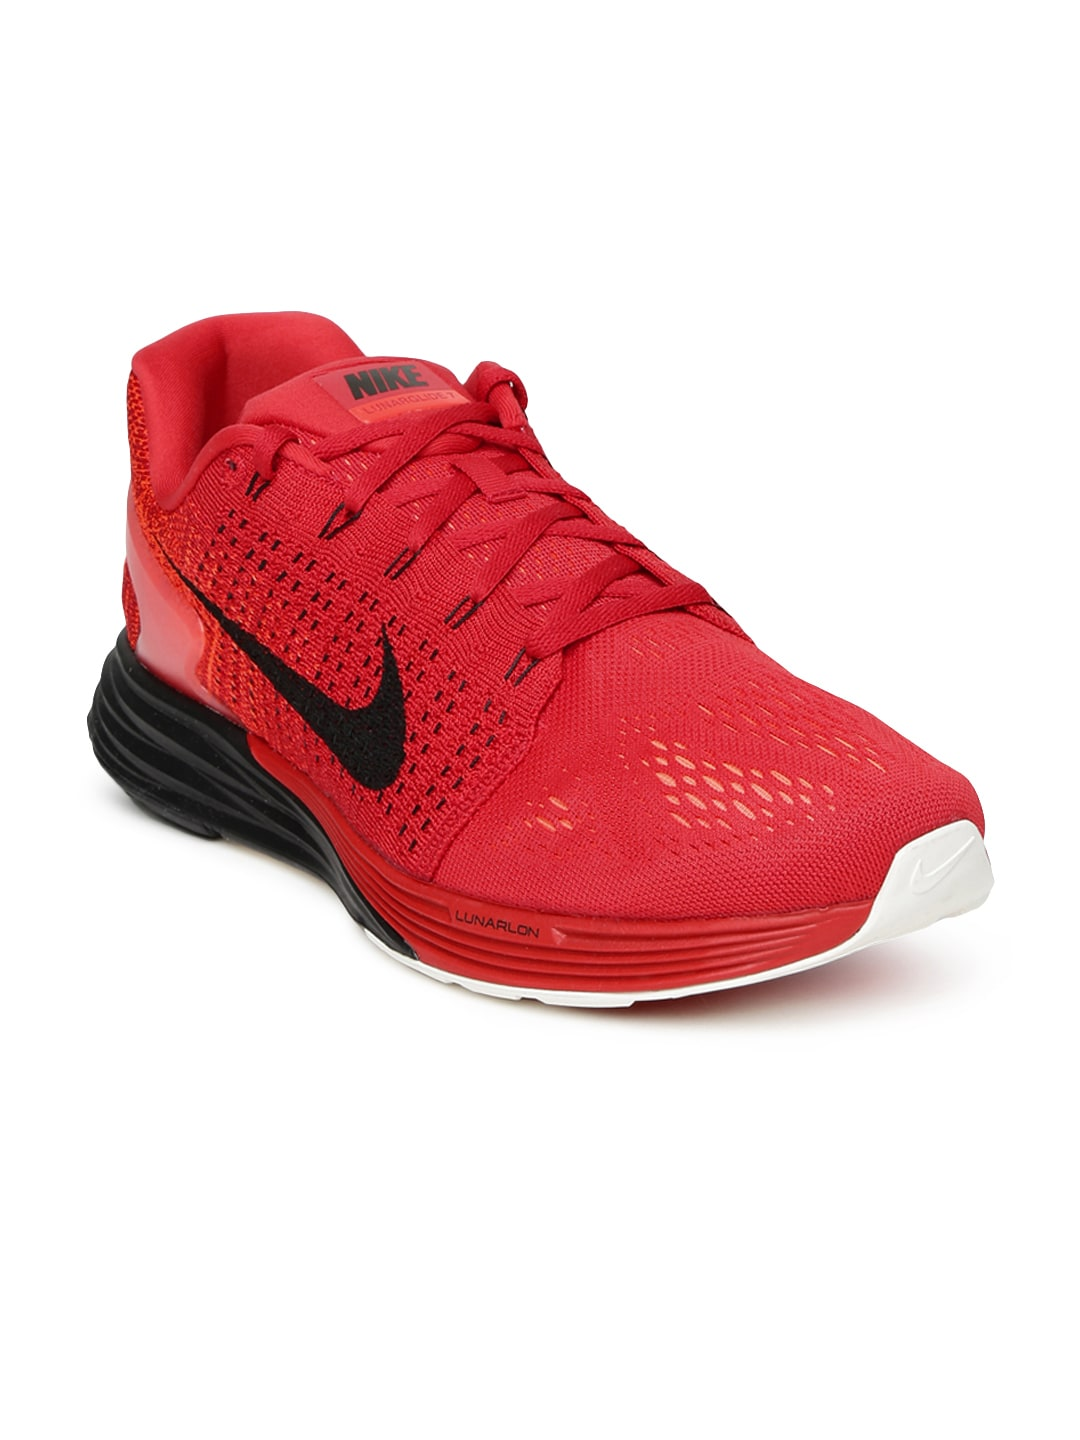 pretty nice 79f55 a0b4c Nike 747355-601 Men Red Lunarglide 7 Running Shoes- Price in India